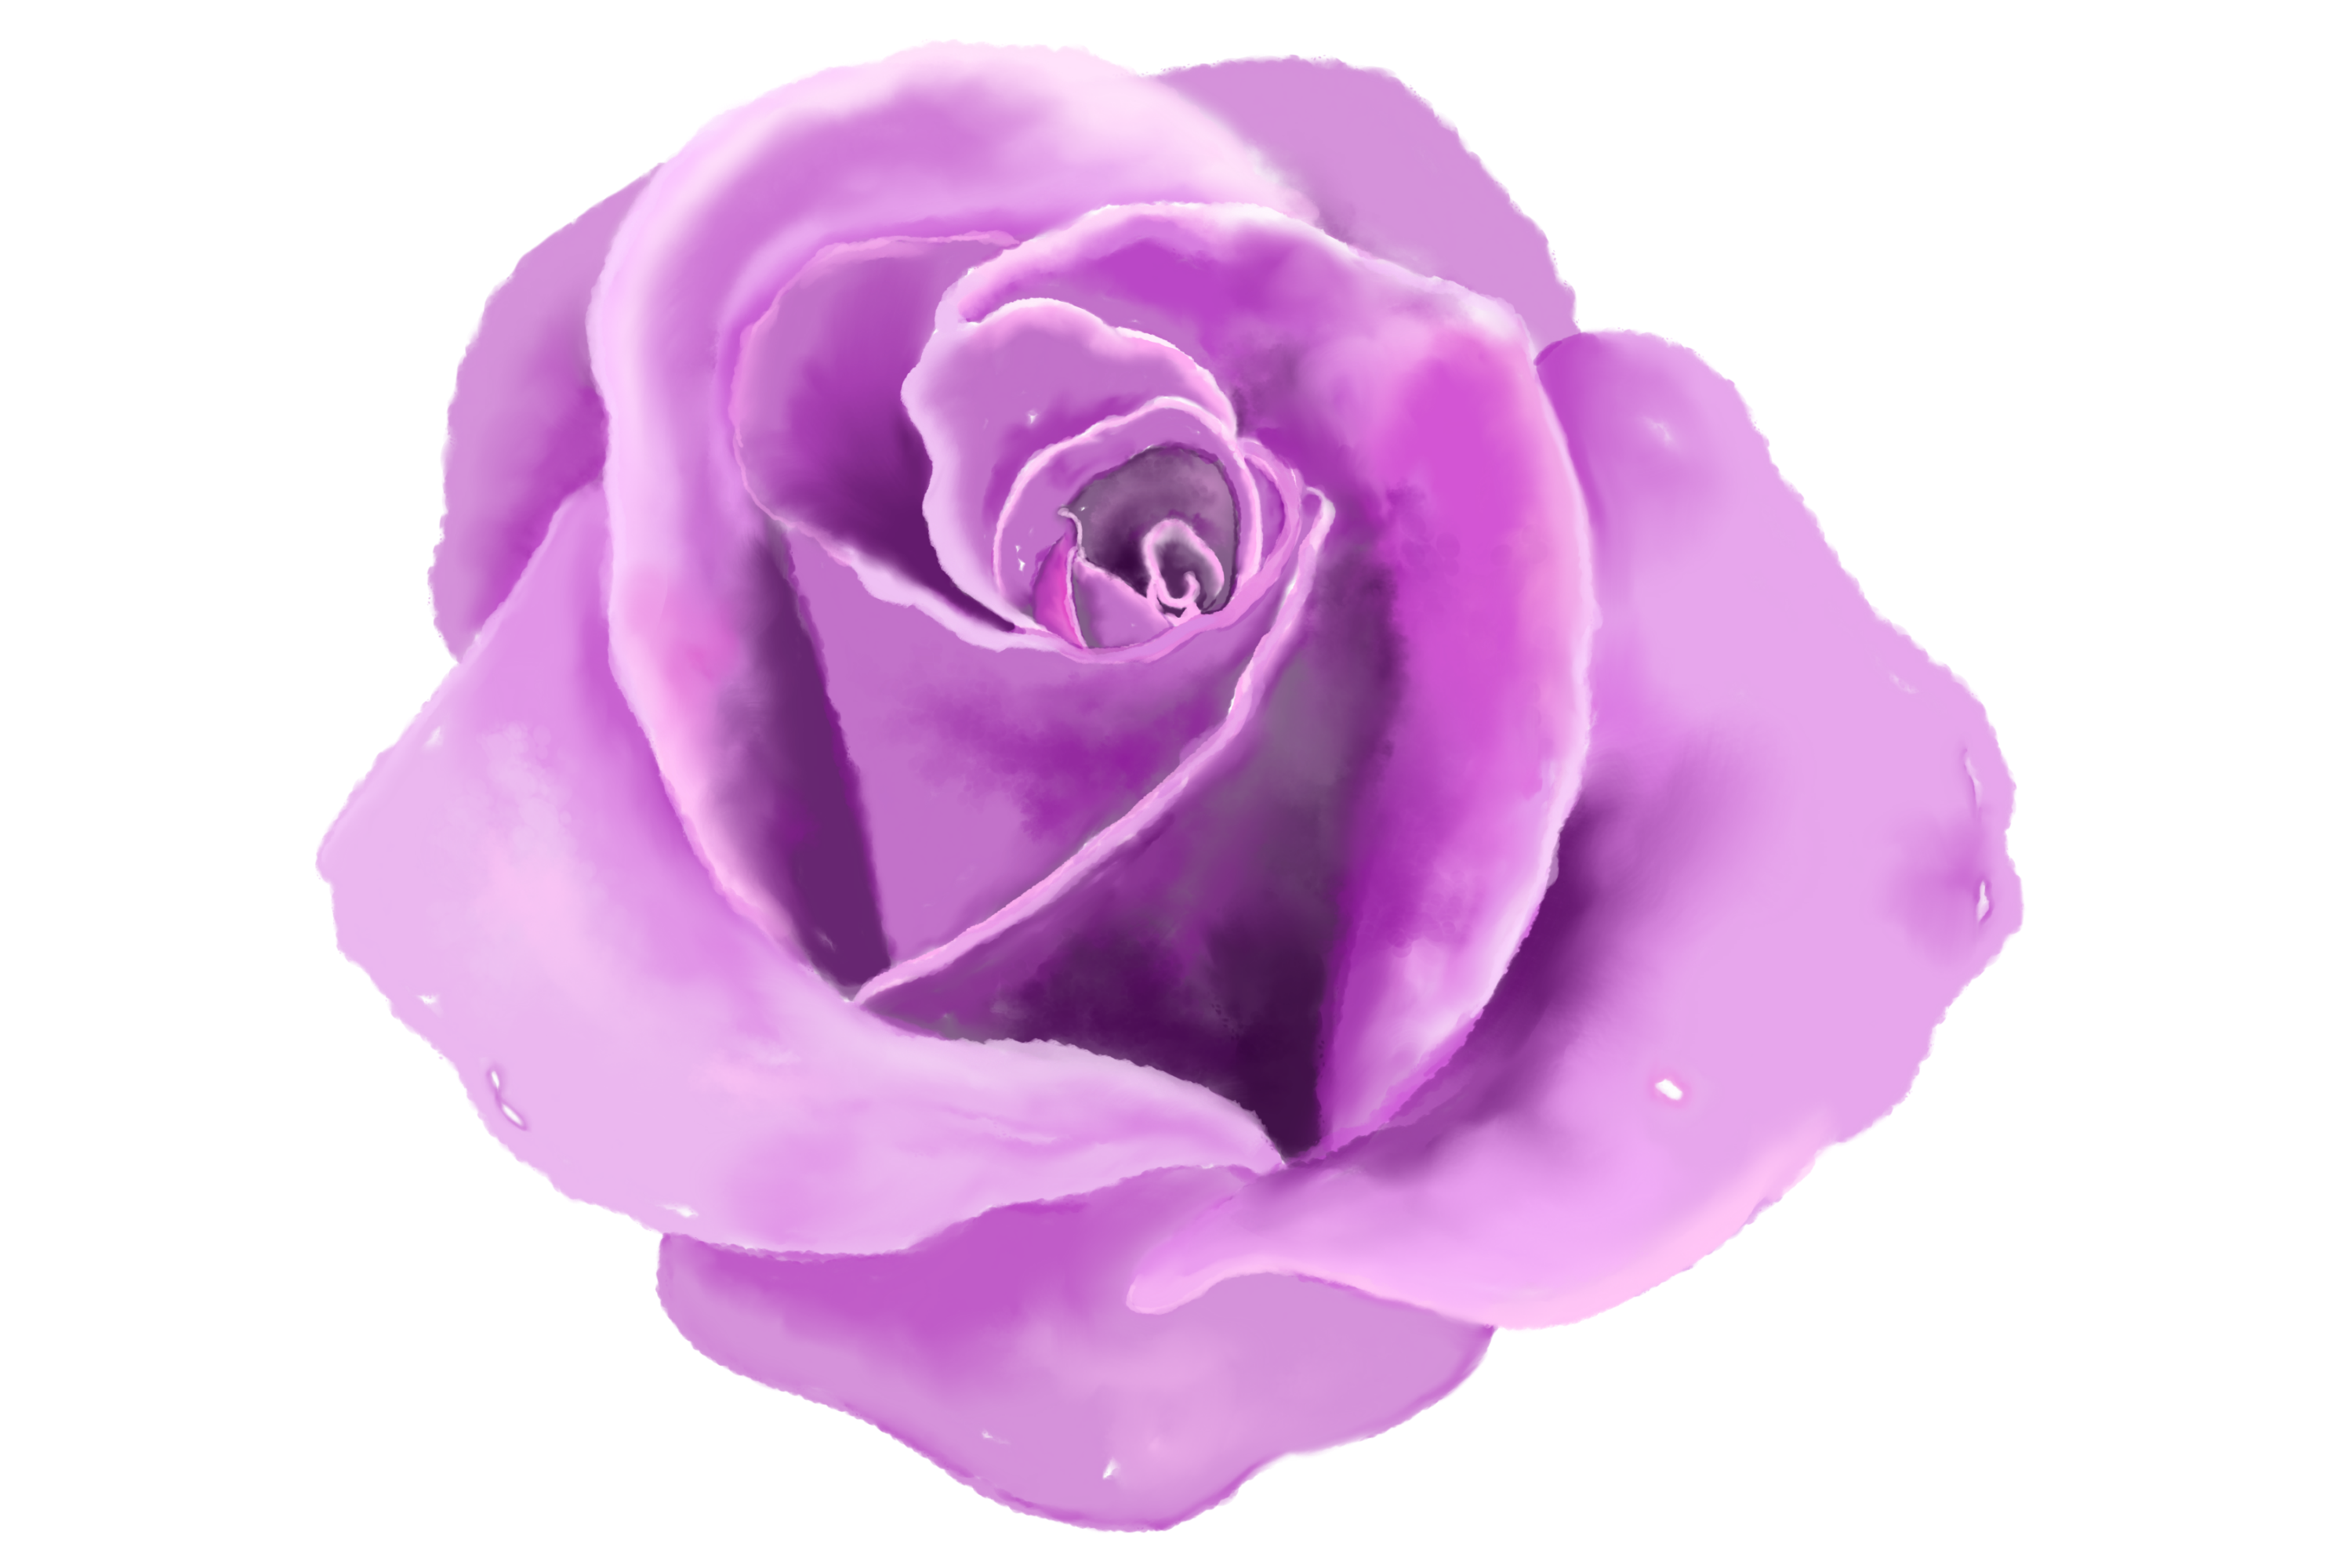 6 Digital Watercolor Roses | Clip Art Illustrations PNG/JPEG example image 5